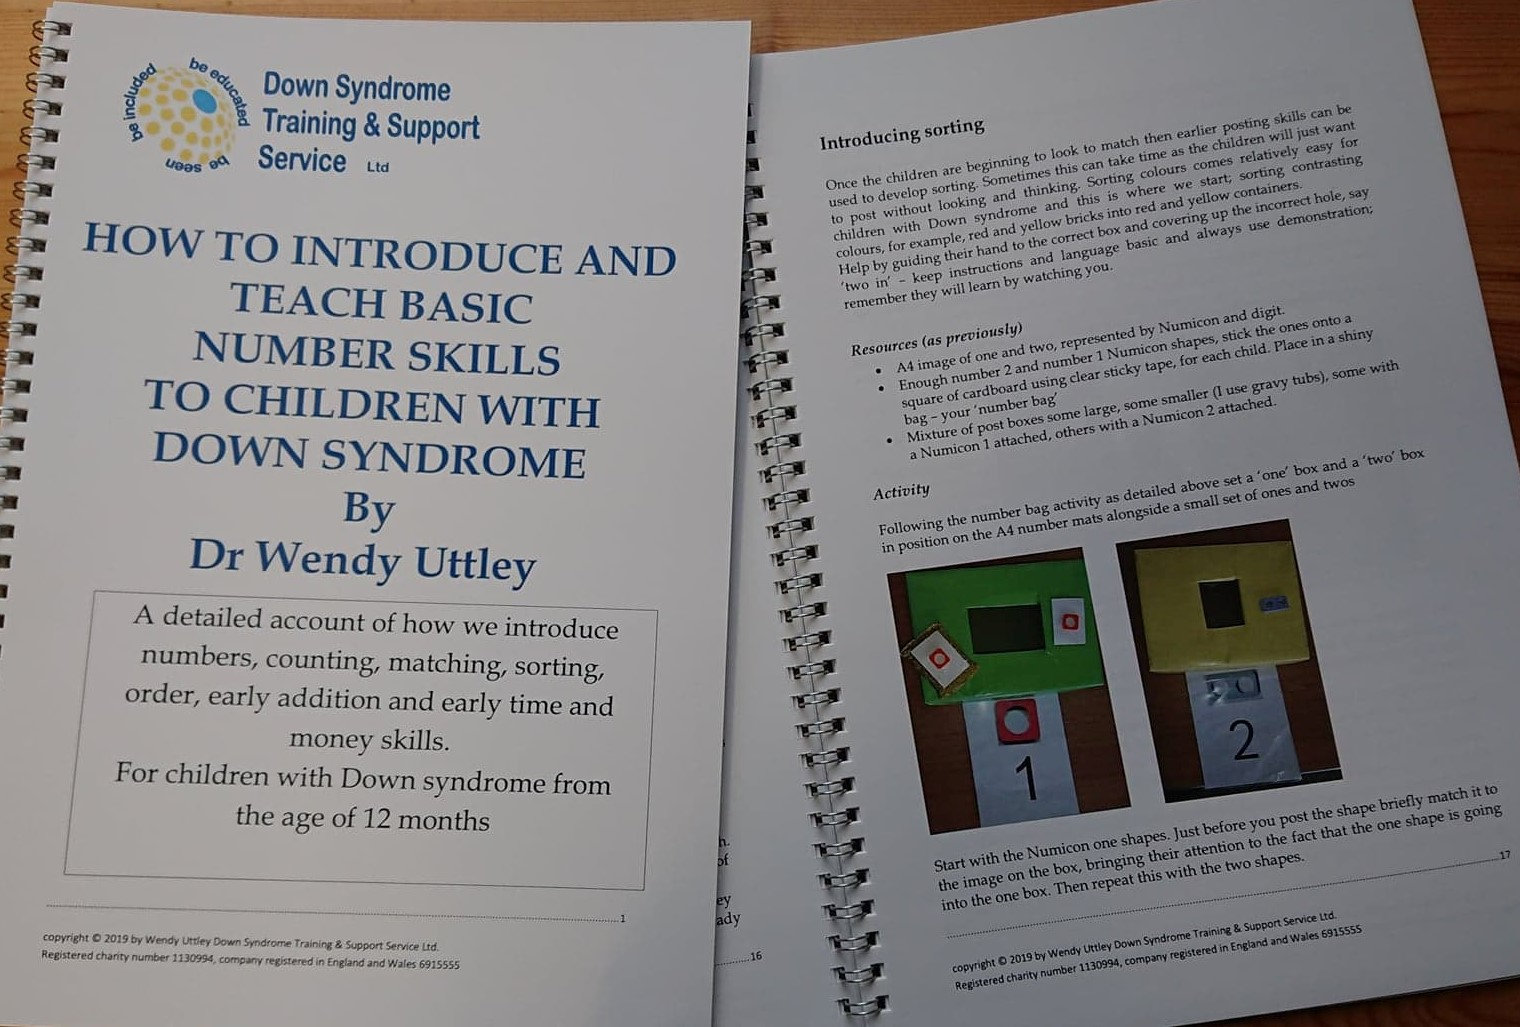 Teaching basic number skills and DS